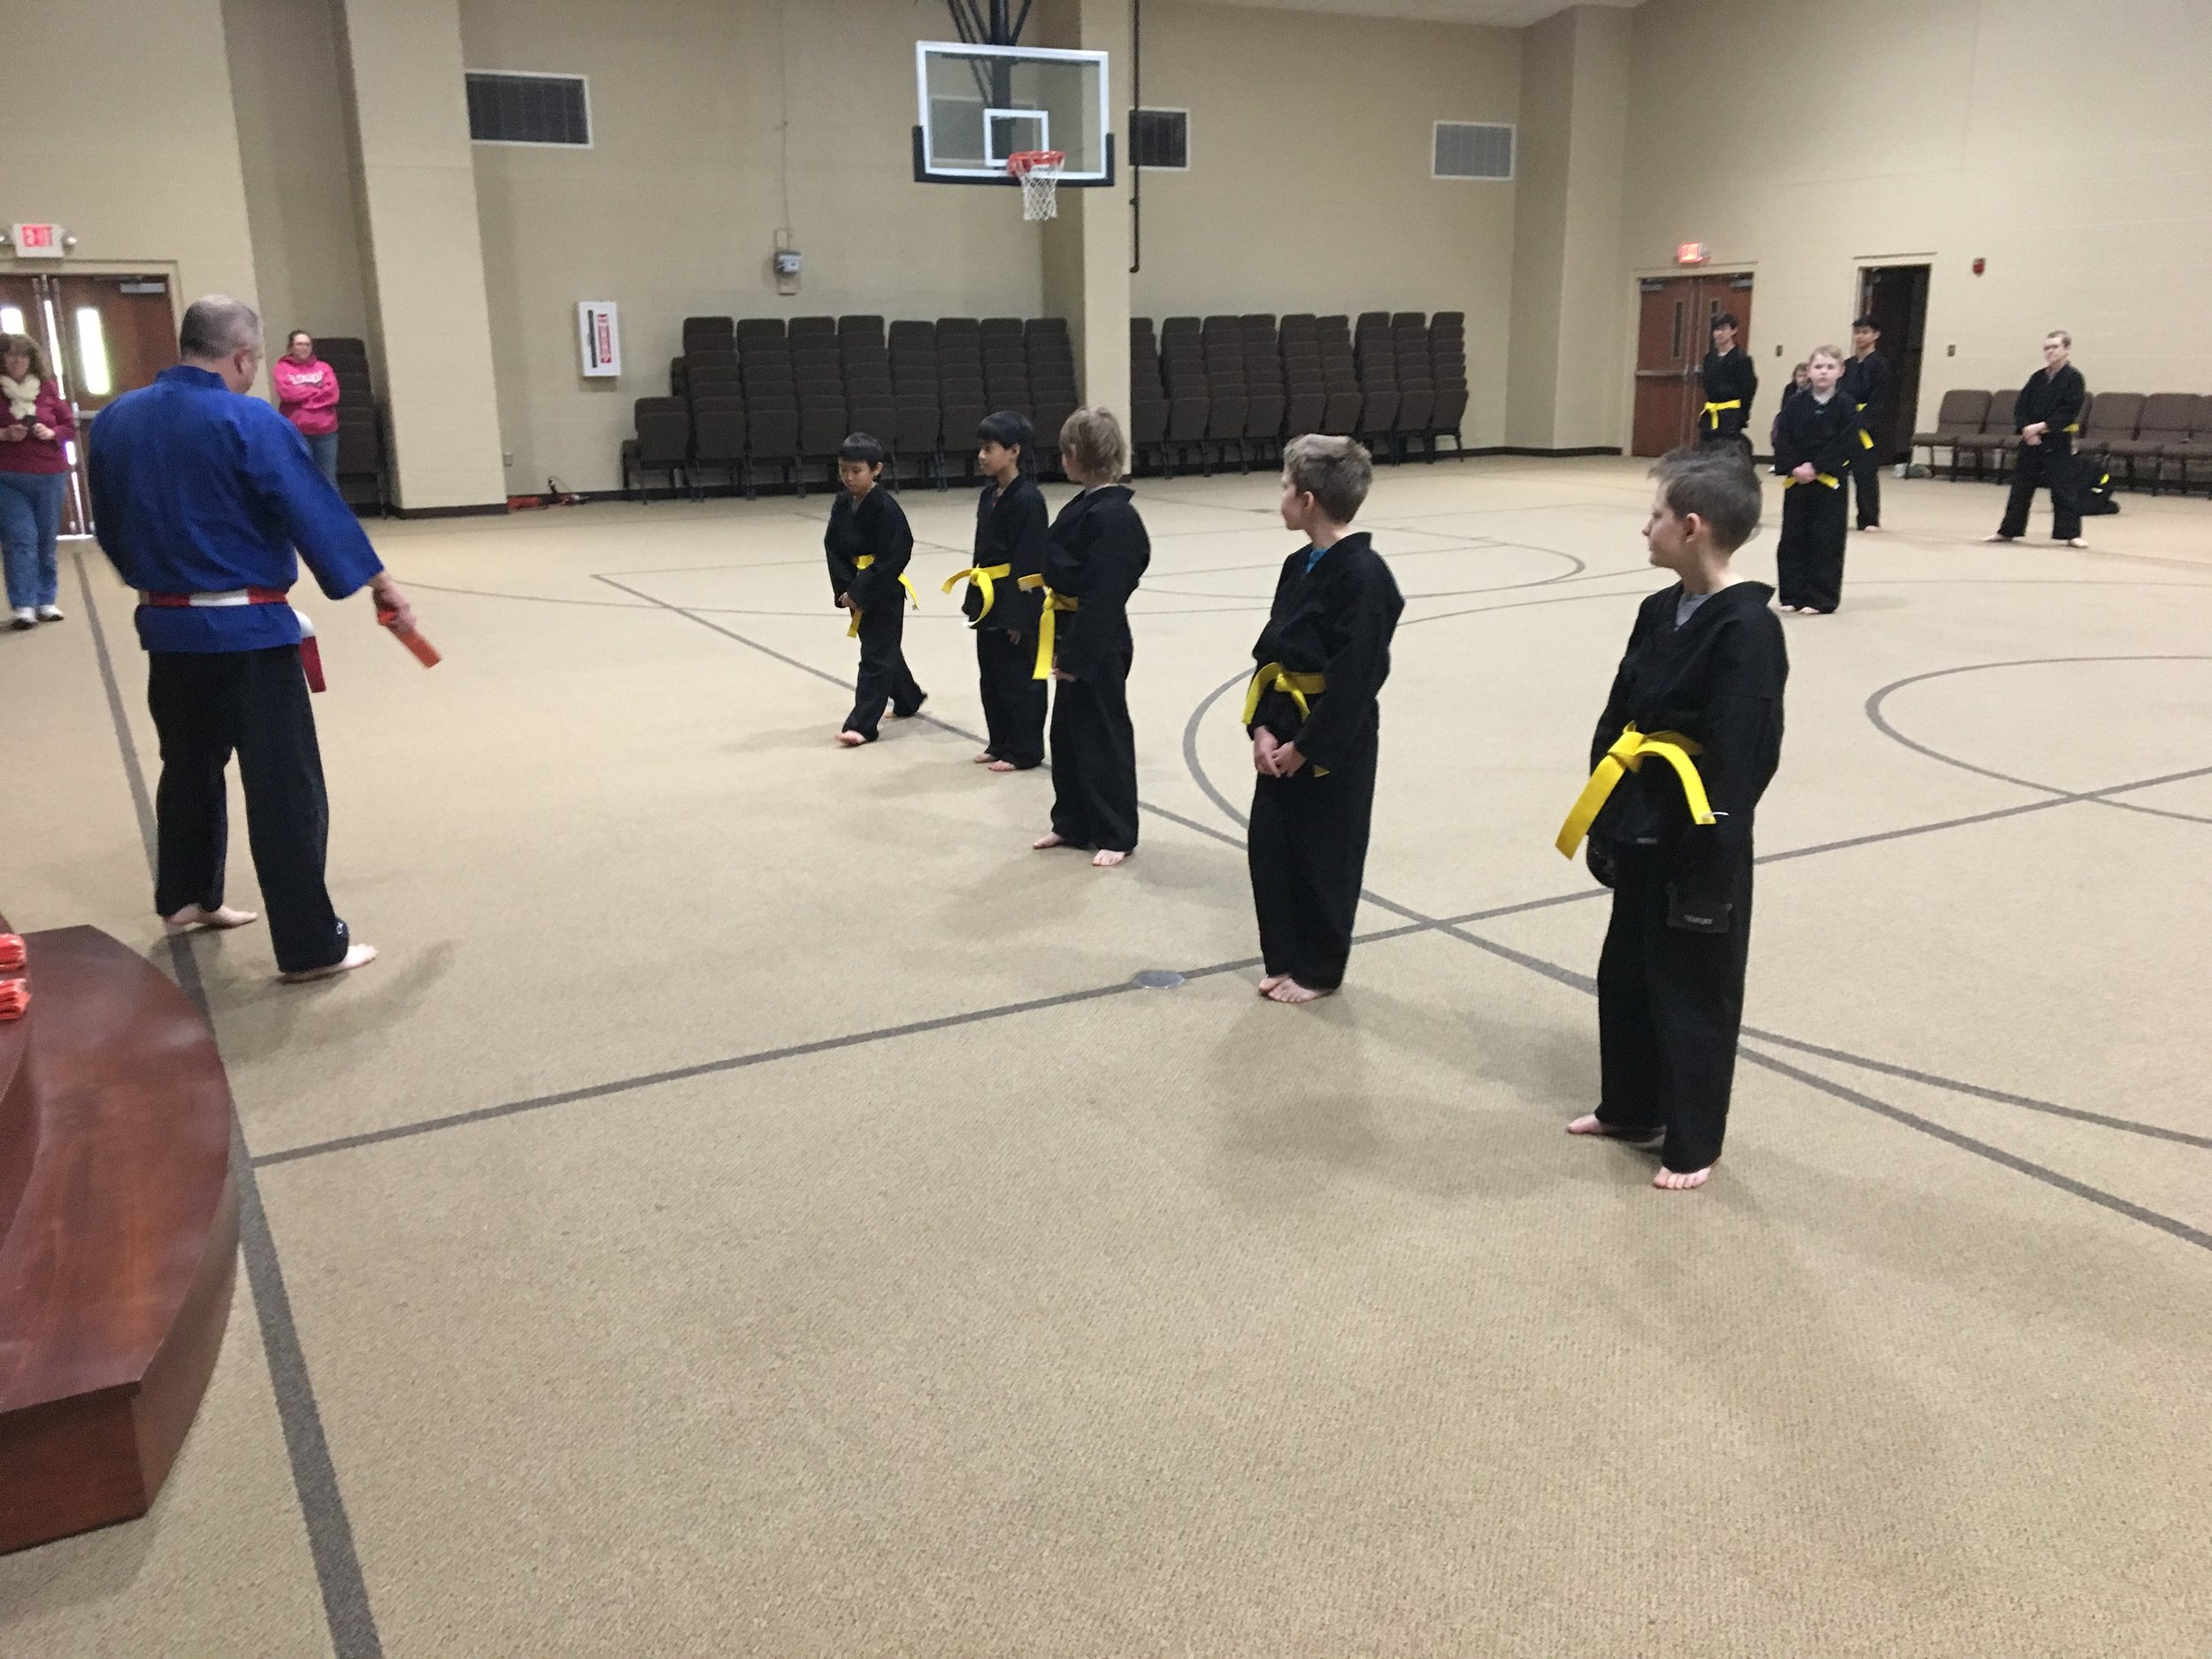 Warriors    Age 8 and up    Beginners: Tuesday, Wednesday, Thursday, and Friday at the Flip Zone 6:00 pm    Advanced: Tuesday 7:00 pm